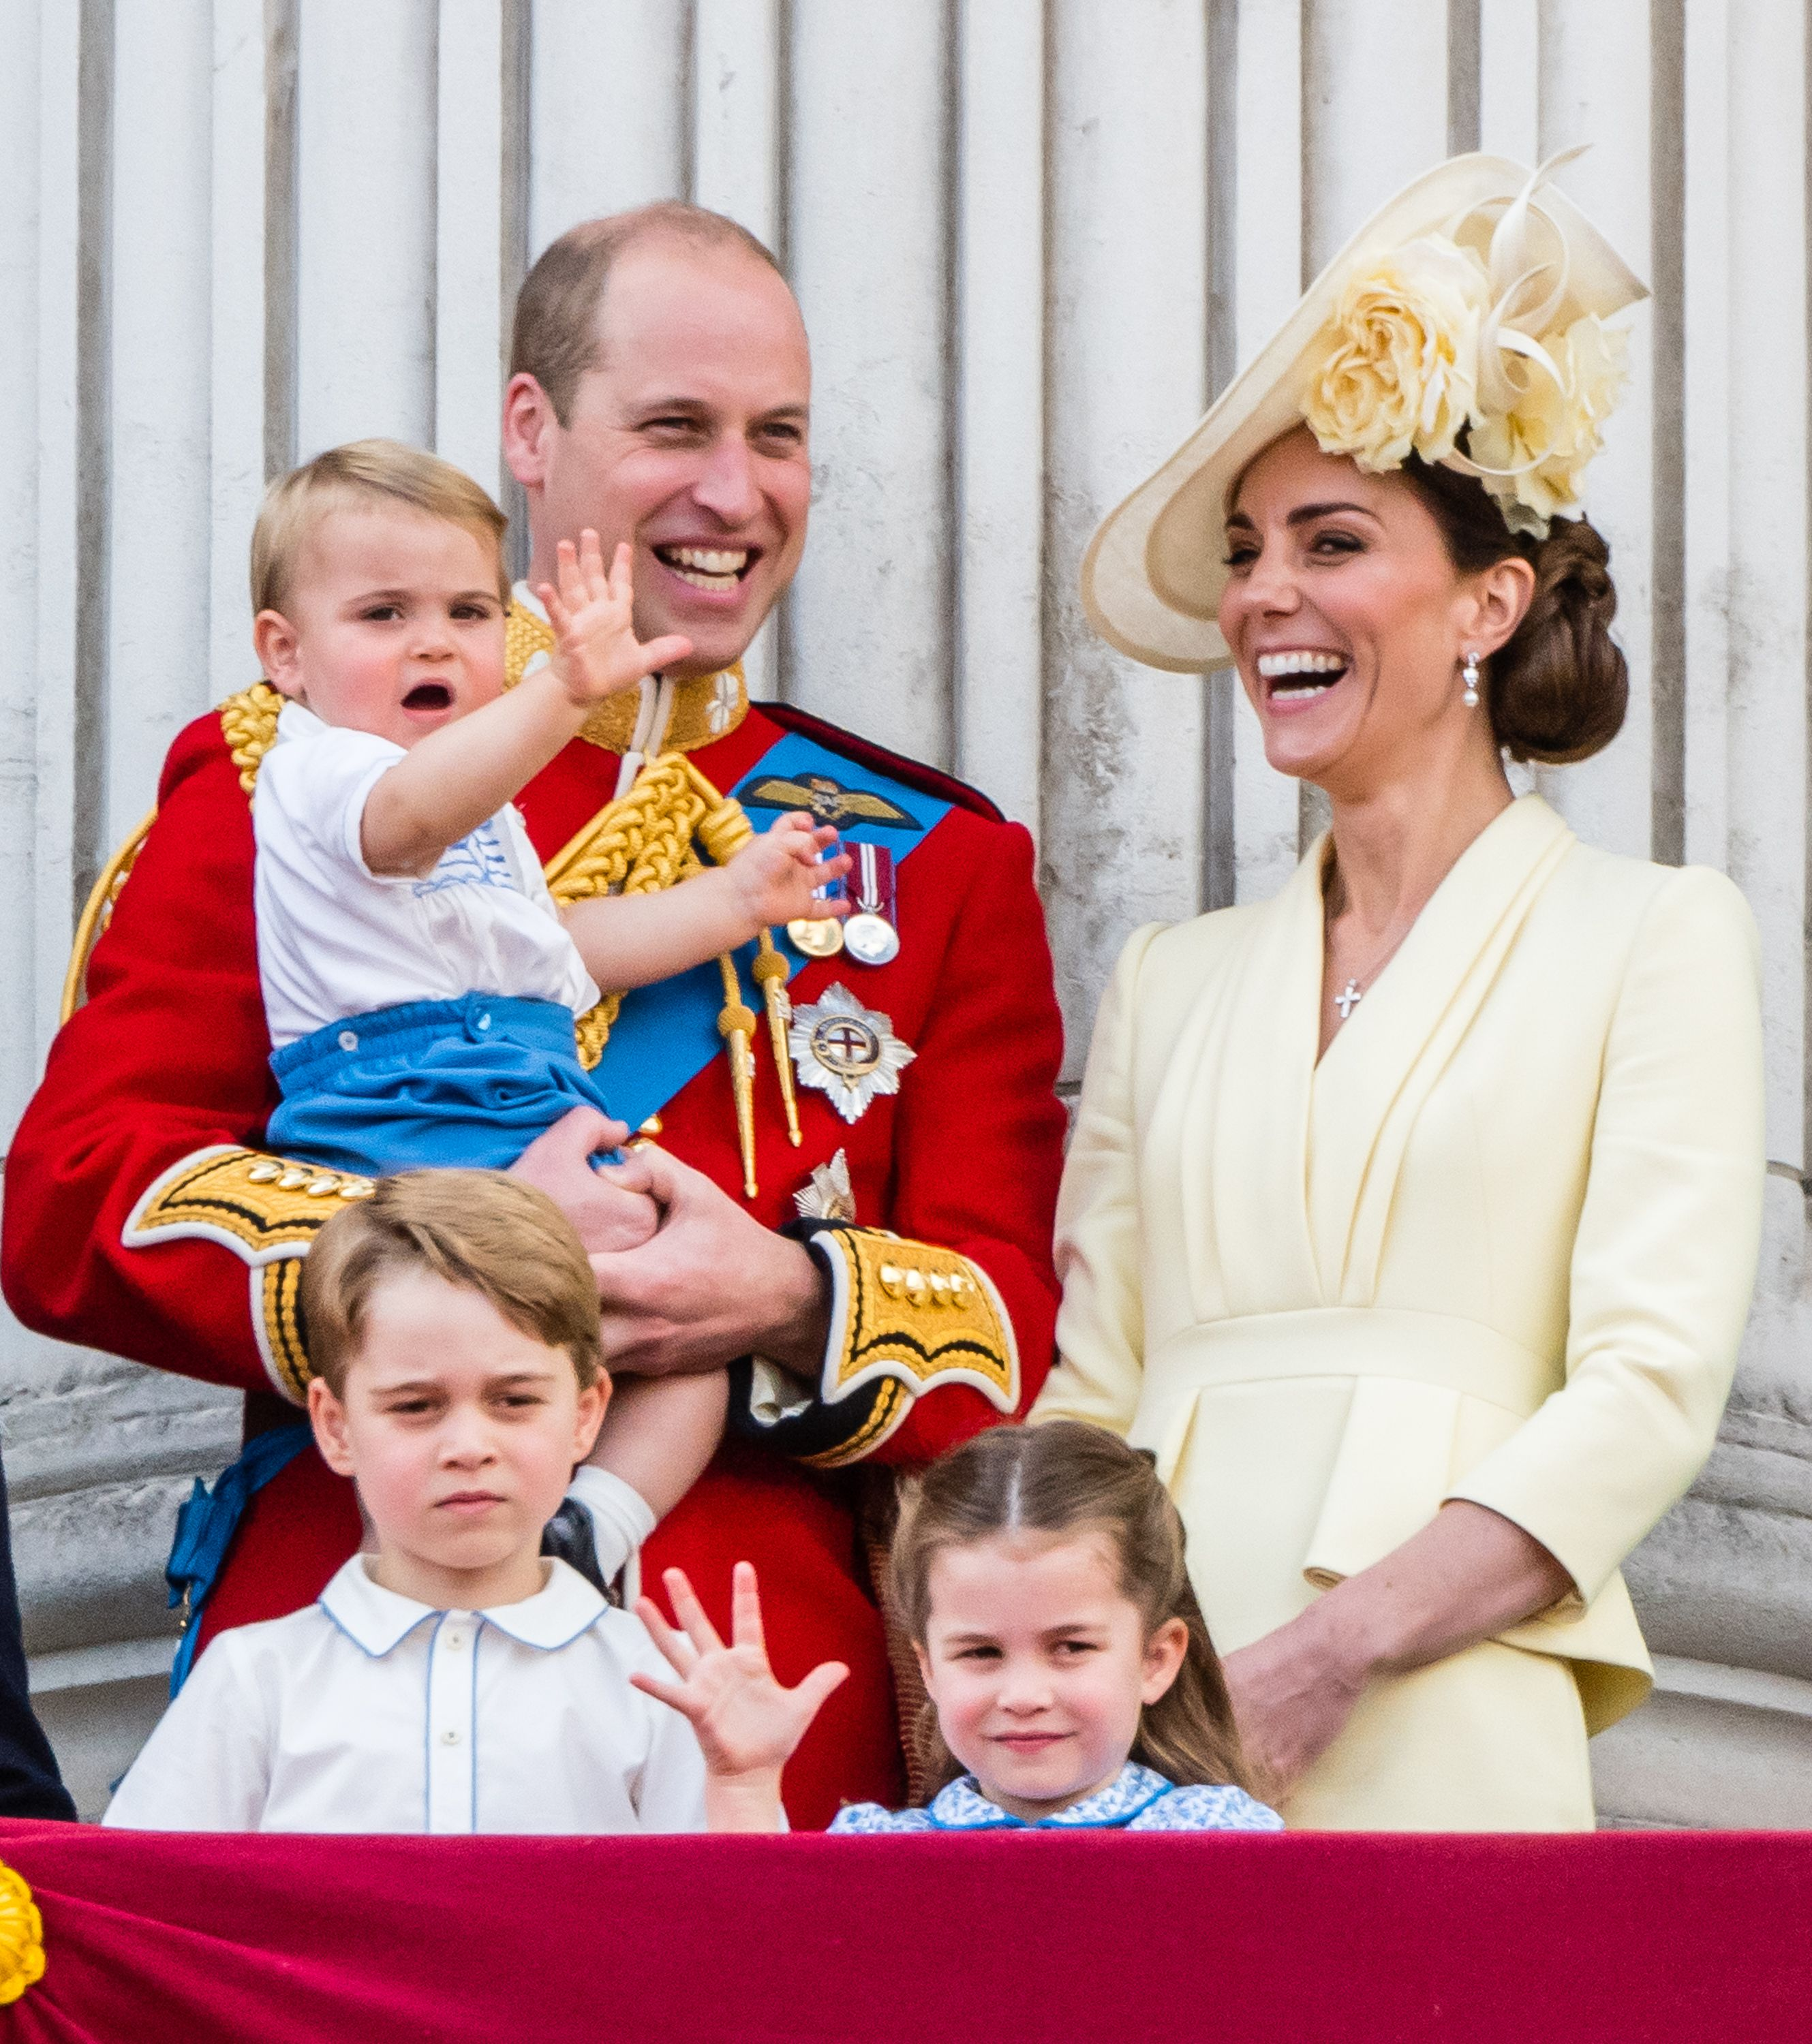 Kate Middleton Finally Gives Insight Into Prince Louis' Cheeky Personality Behind Palace Doors